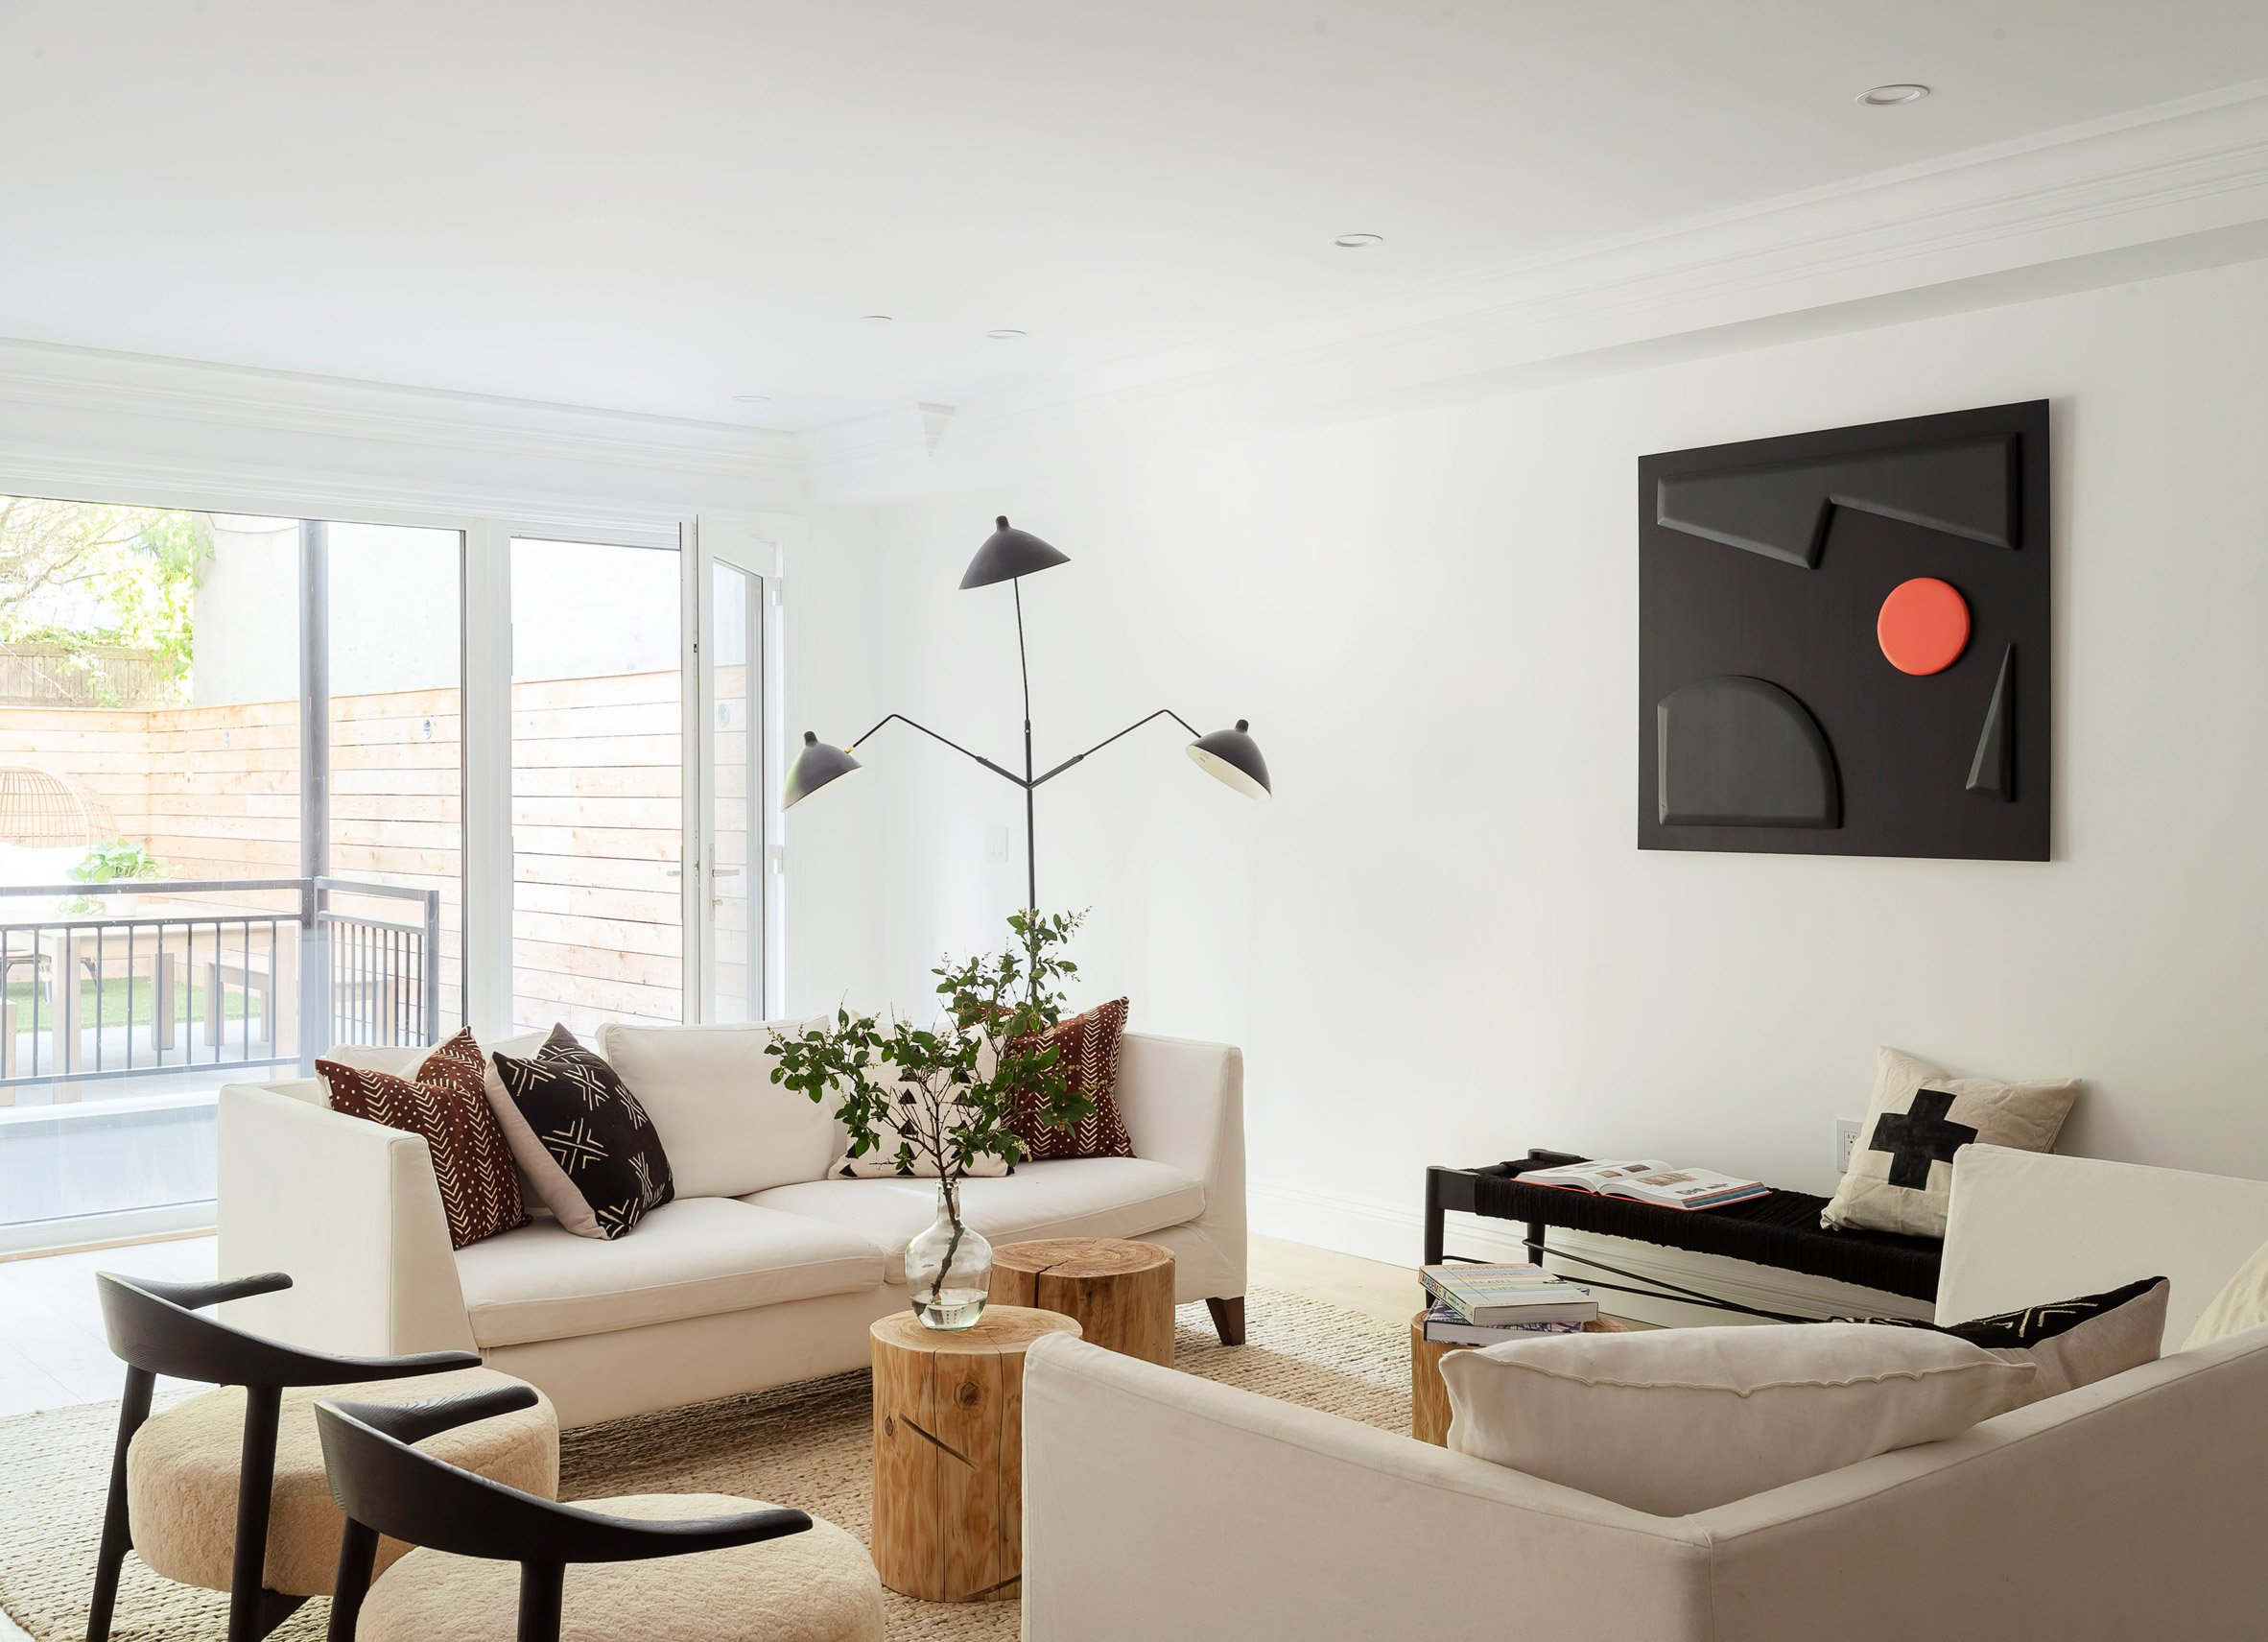 The Sackett Street townhouse's bright and airy living room